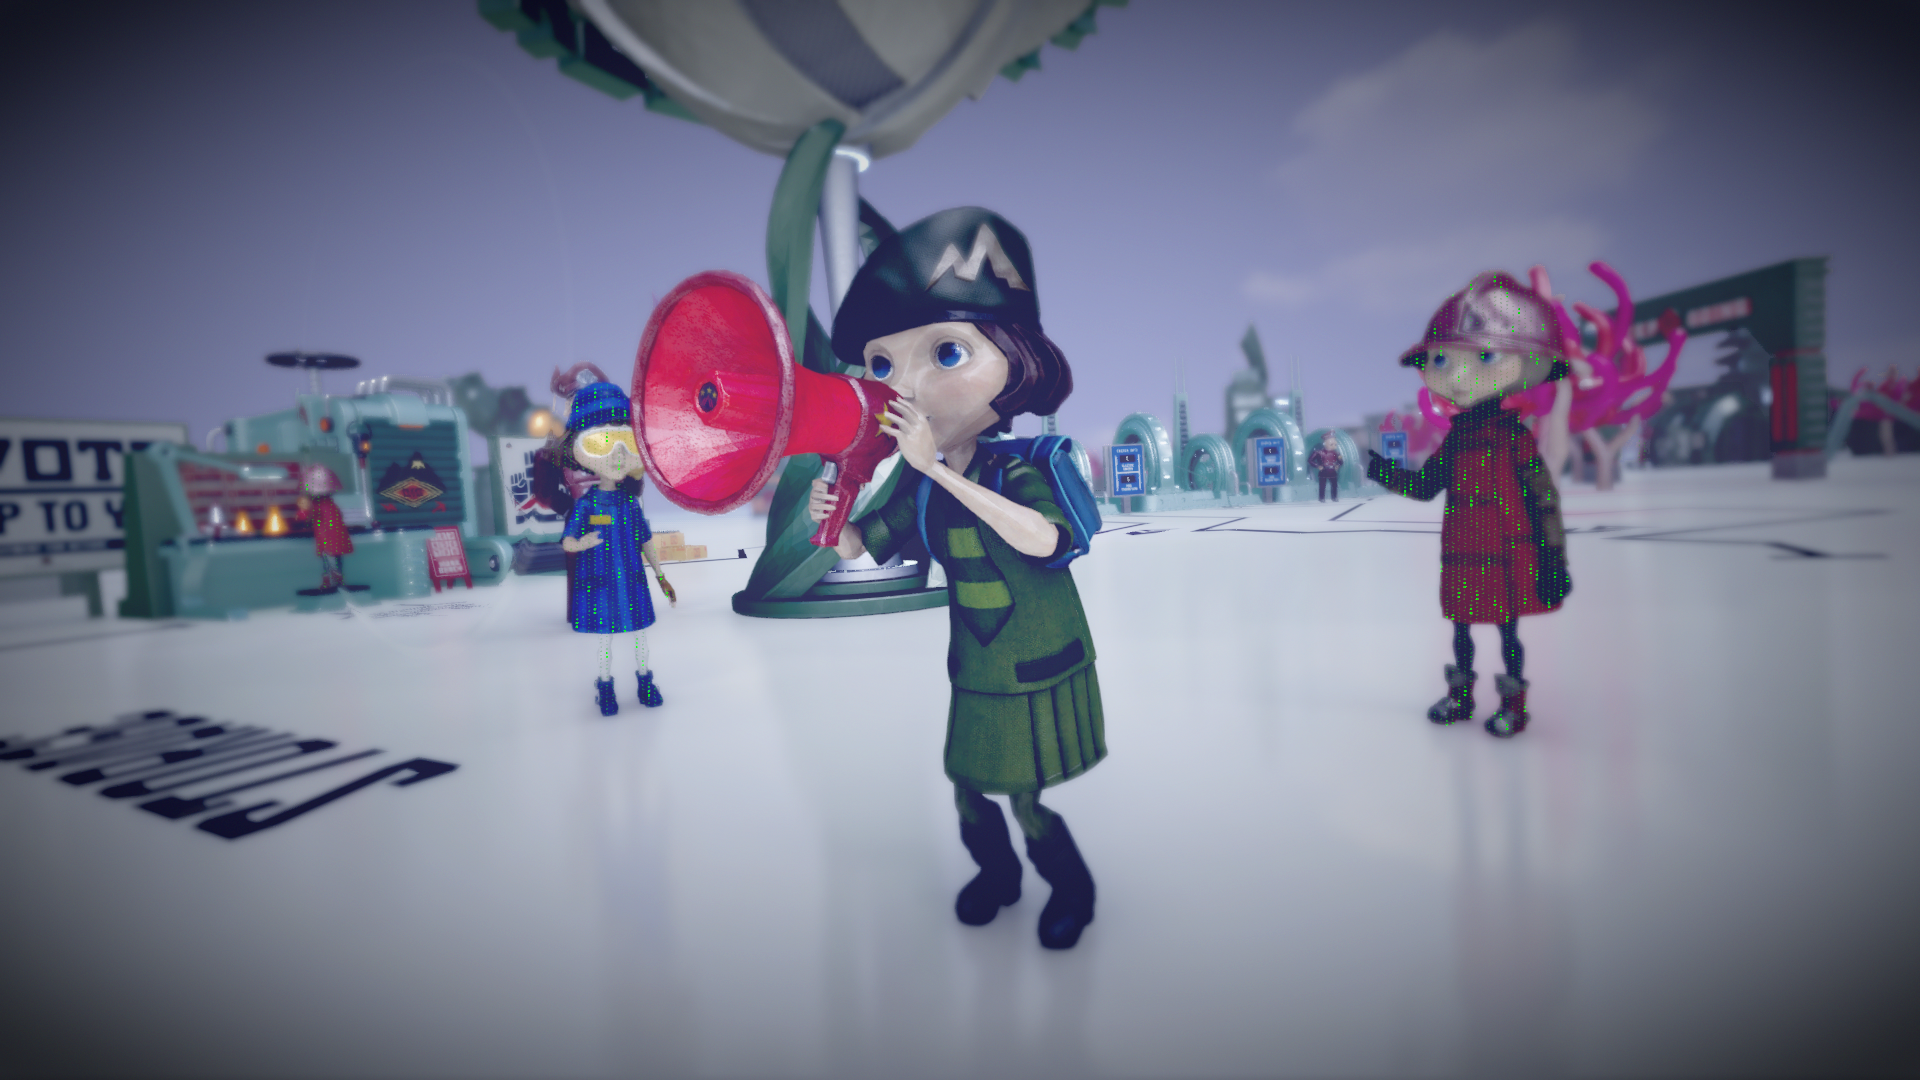 Tomorrow Children